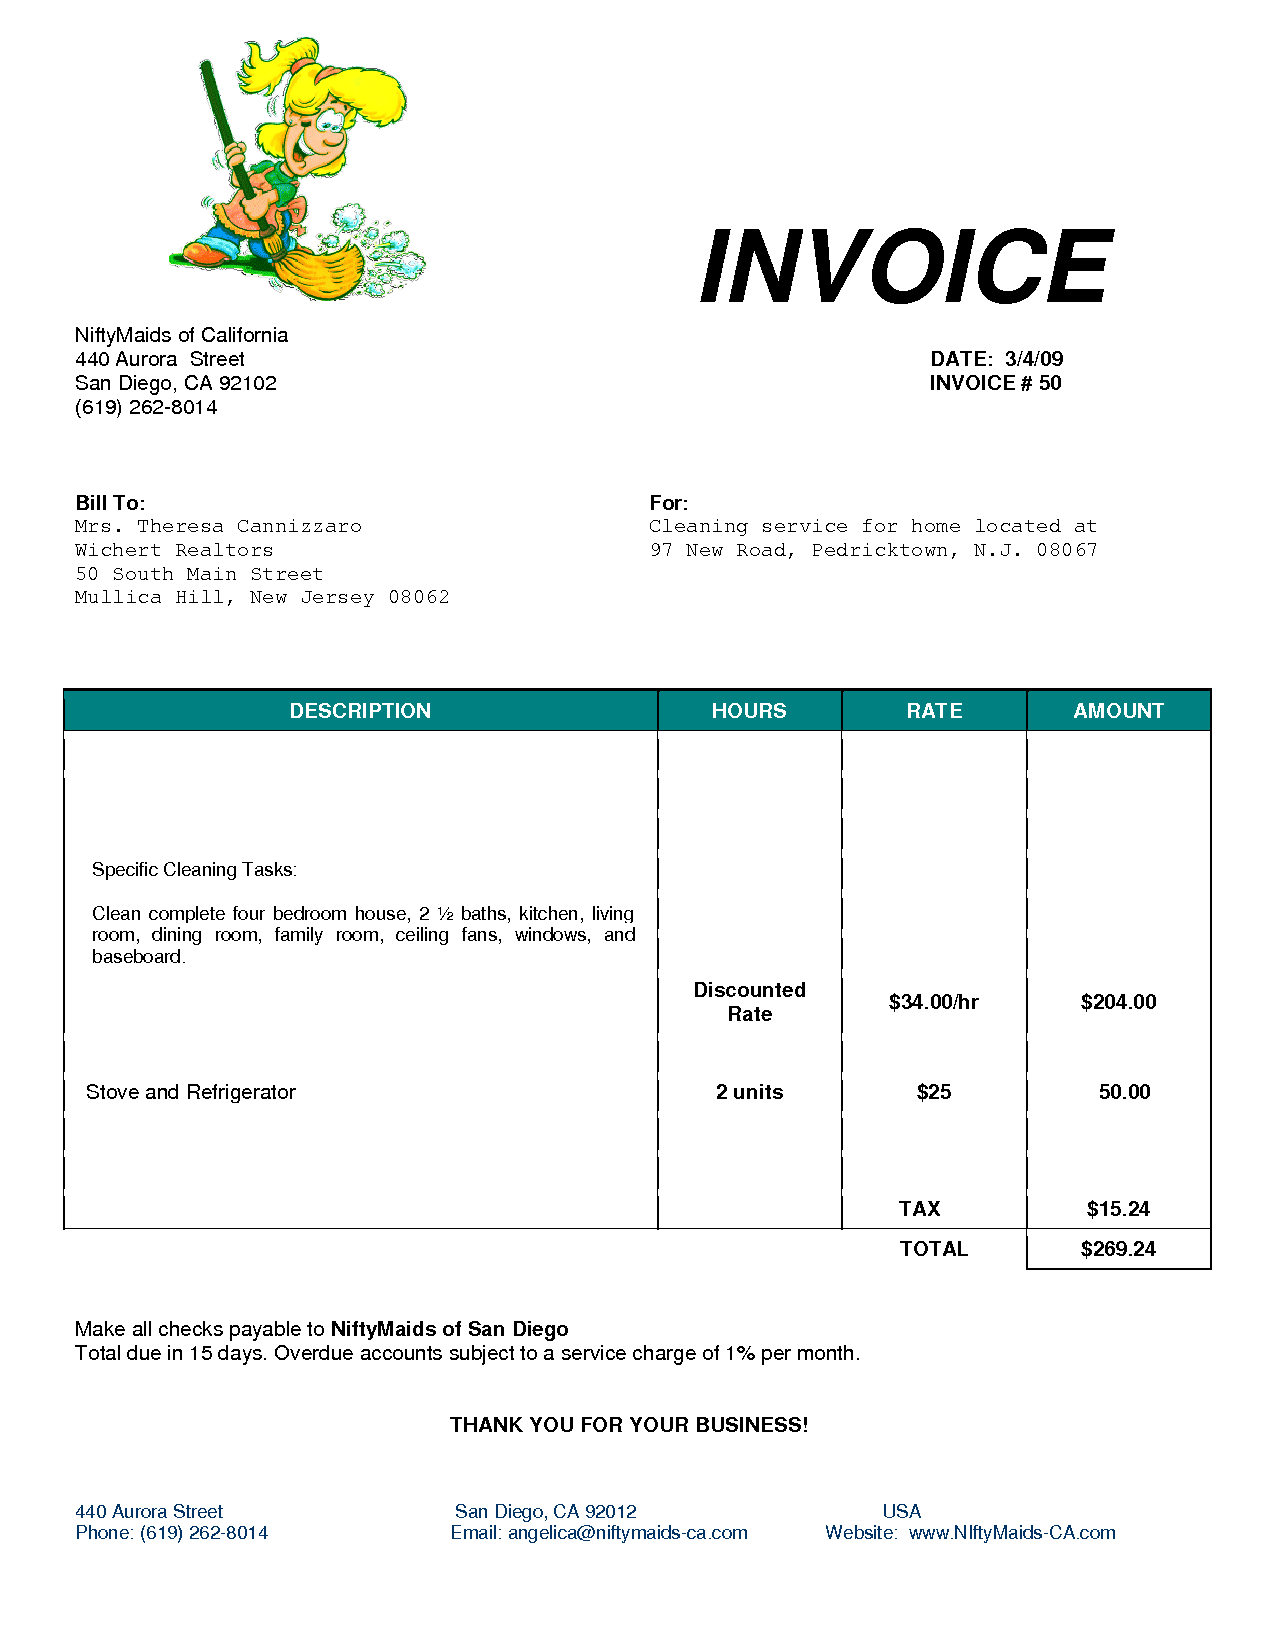 Moving Company Invoice Template Short Paid Invoice Warehouse - Moving company invoice pdf